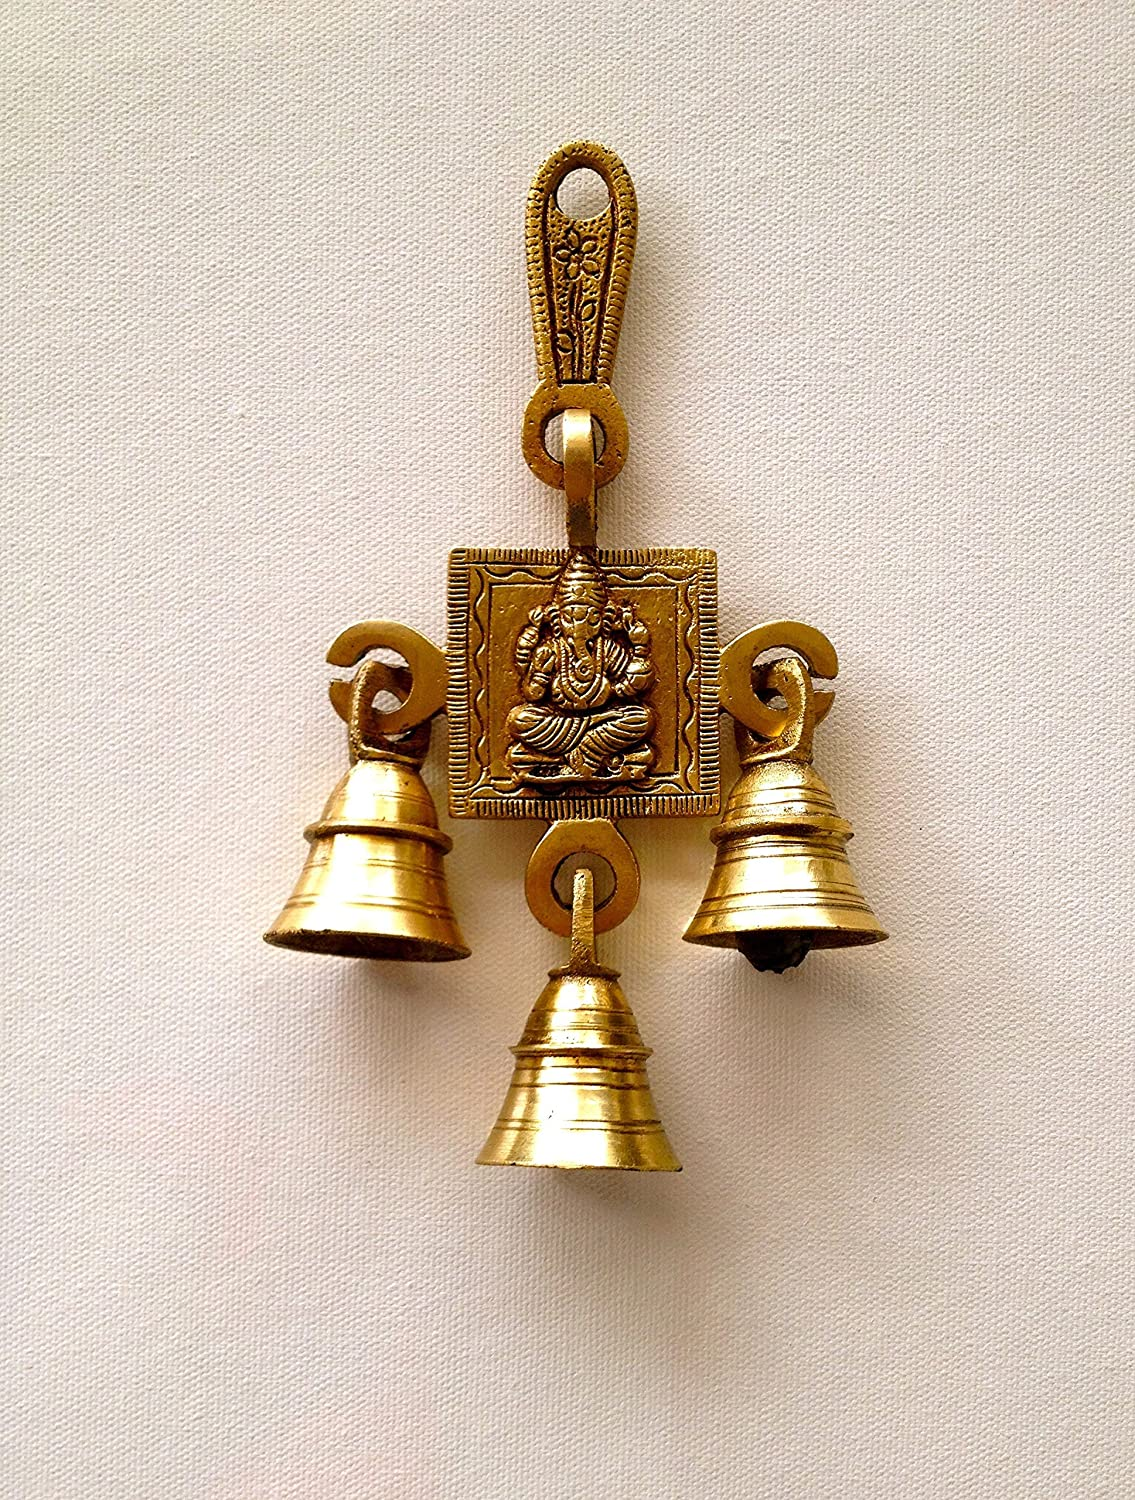 Buy Als Kings And Queens Brass Gift Statue Ganehsa Wall Hanging With 3  Bells Online At Low Prices In India   Amazon.in